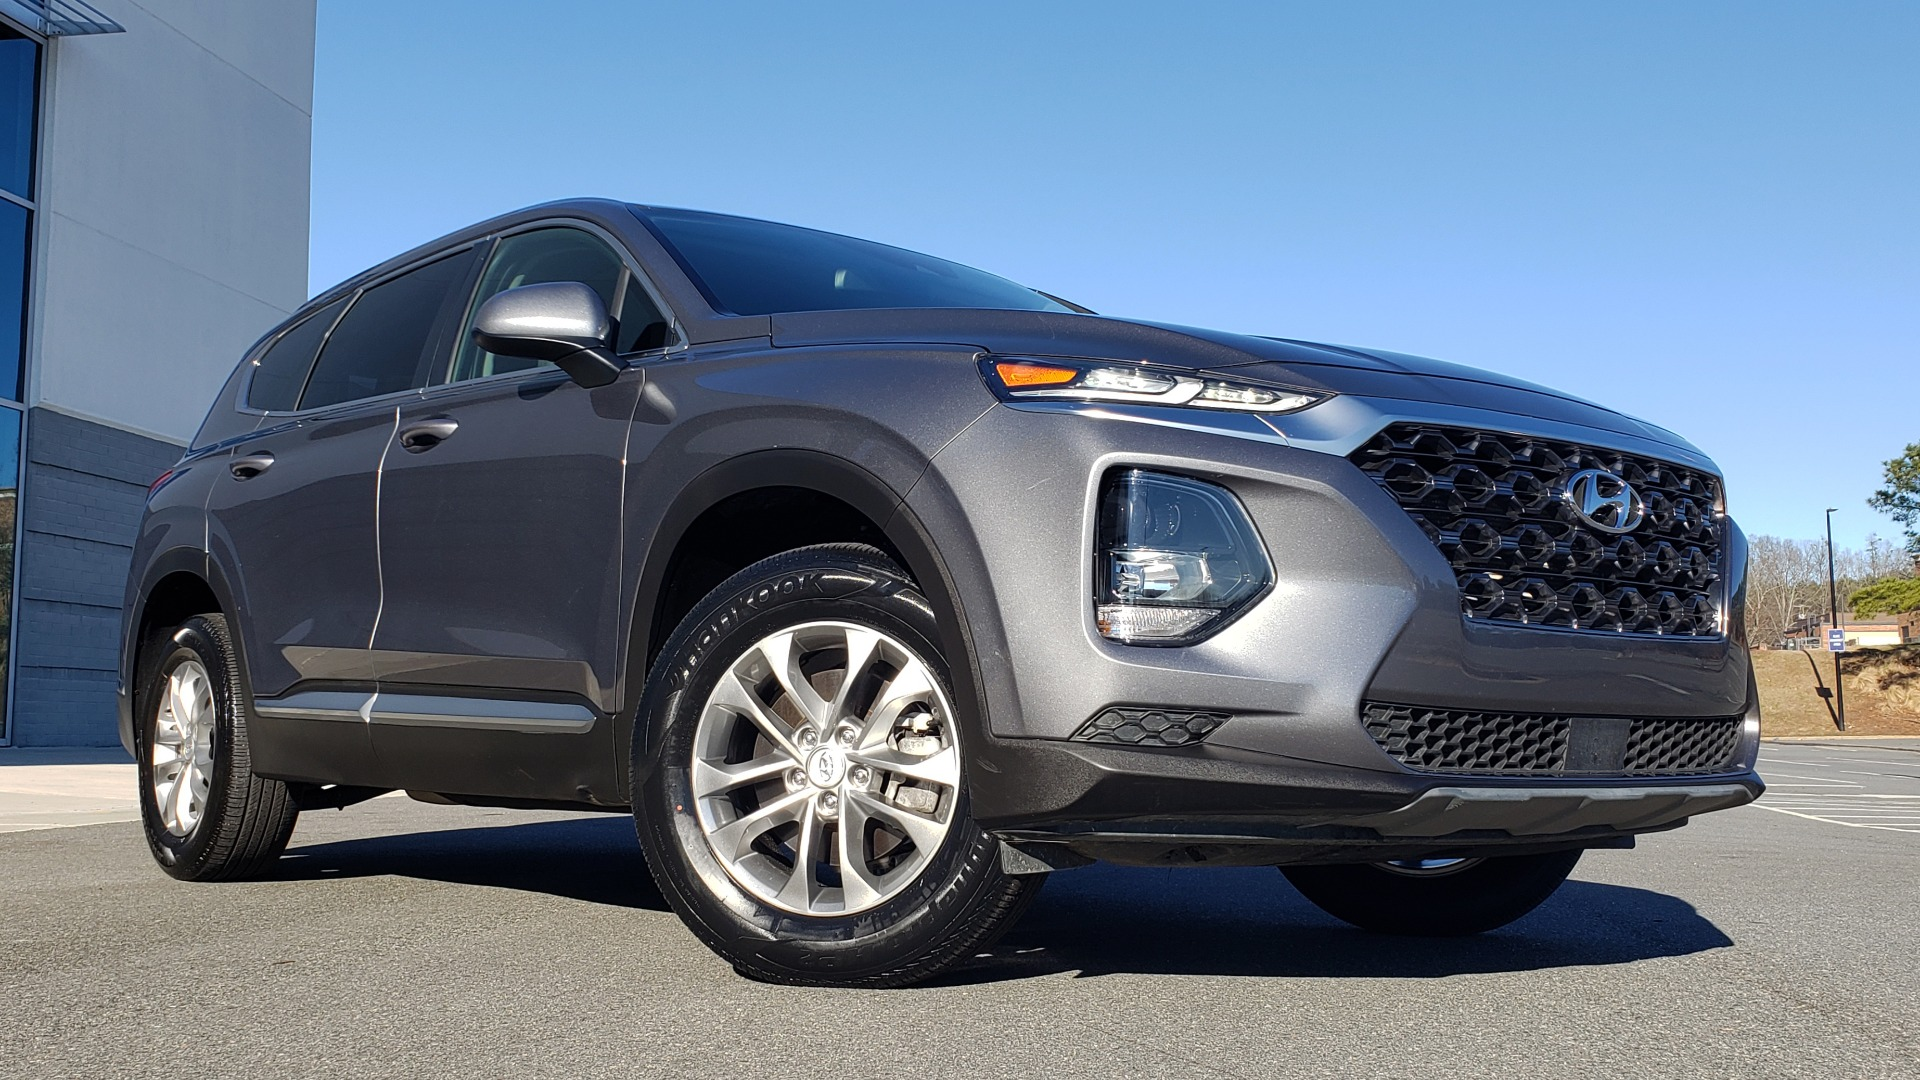 Used 2019 Hyundai SANTA FE SE / 2.4L 4-CYL / 8-SPD AUTO / BLIND SPOT / LANE KEEP ASSIST for sale Sold at Formula Imports in Charlotte NC 28227 2